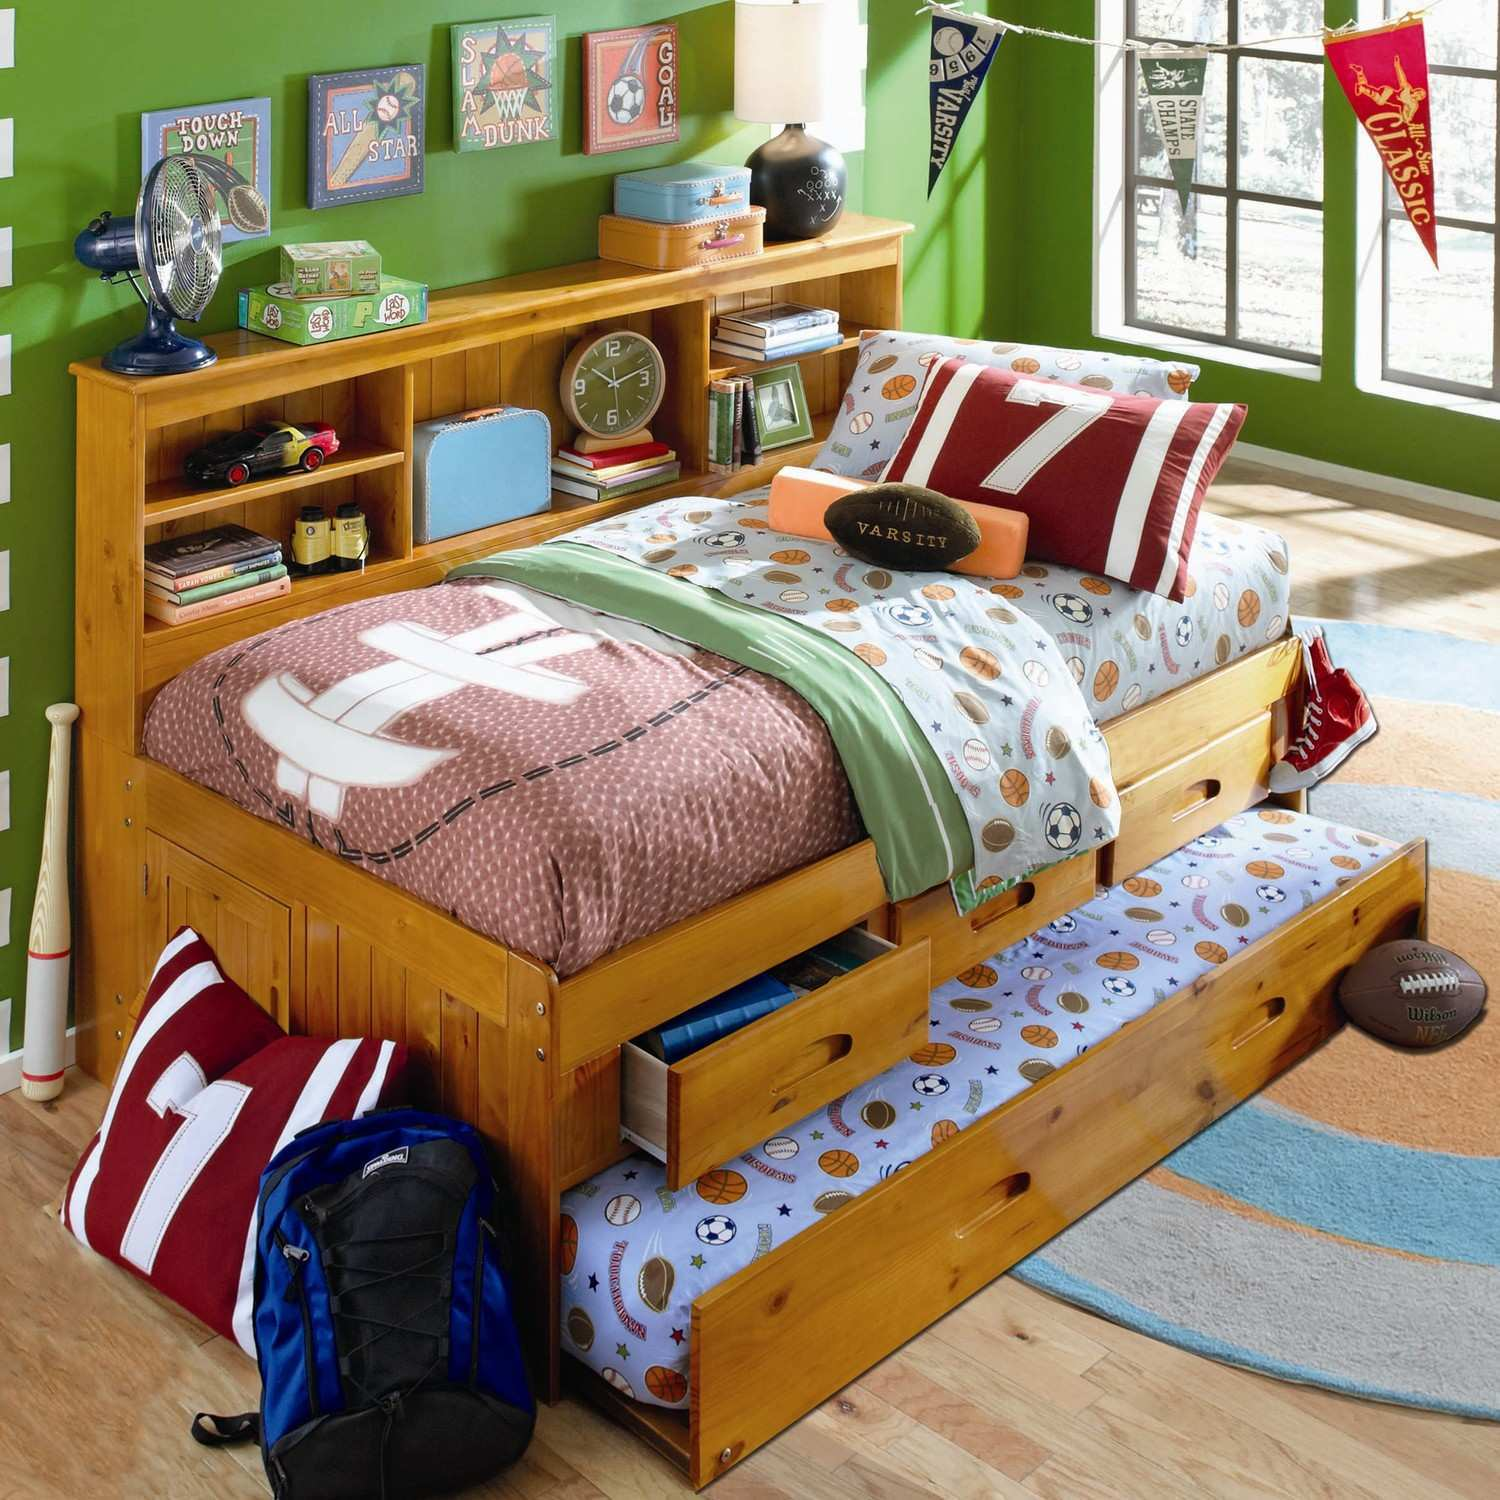 Breathtaking Exterior Color In The Matter Kids Room Most Popular